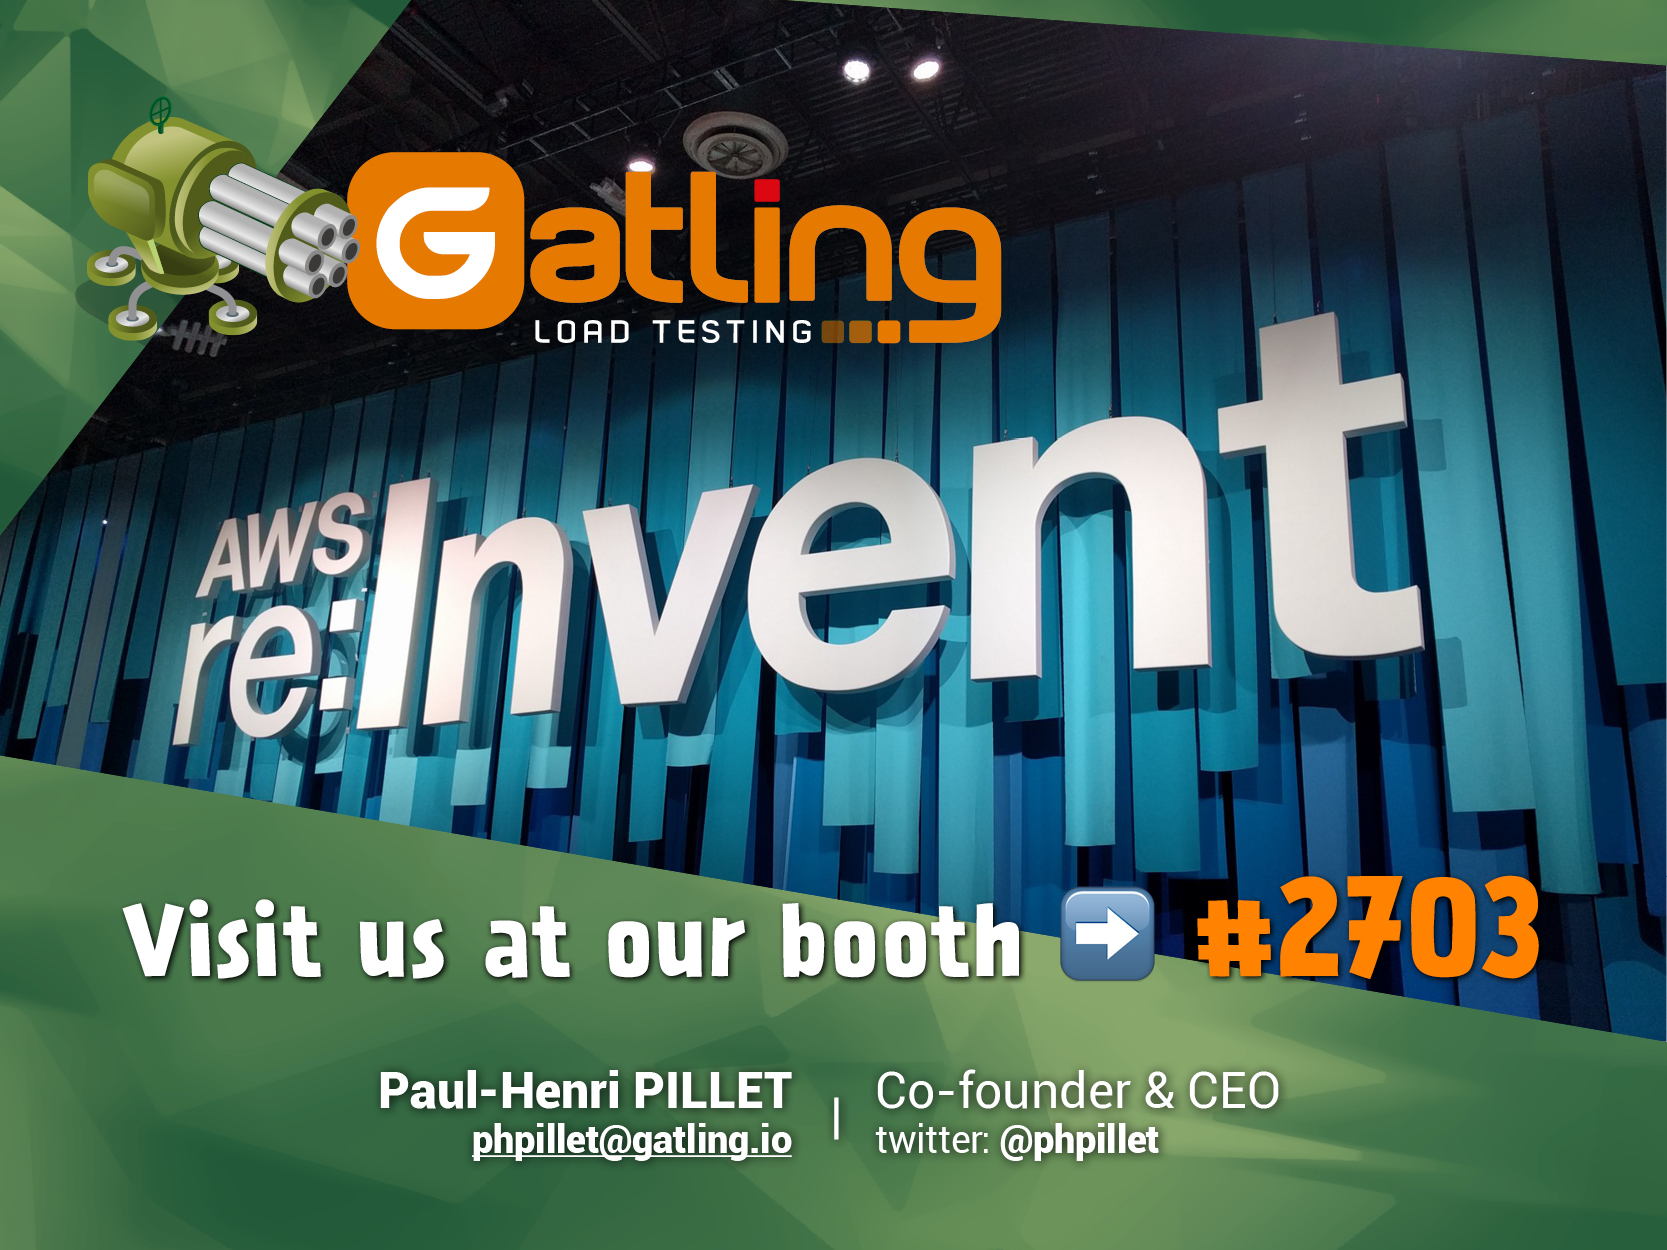 Gatling participated in AWS re Invent summit